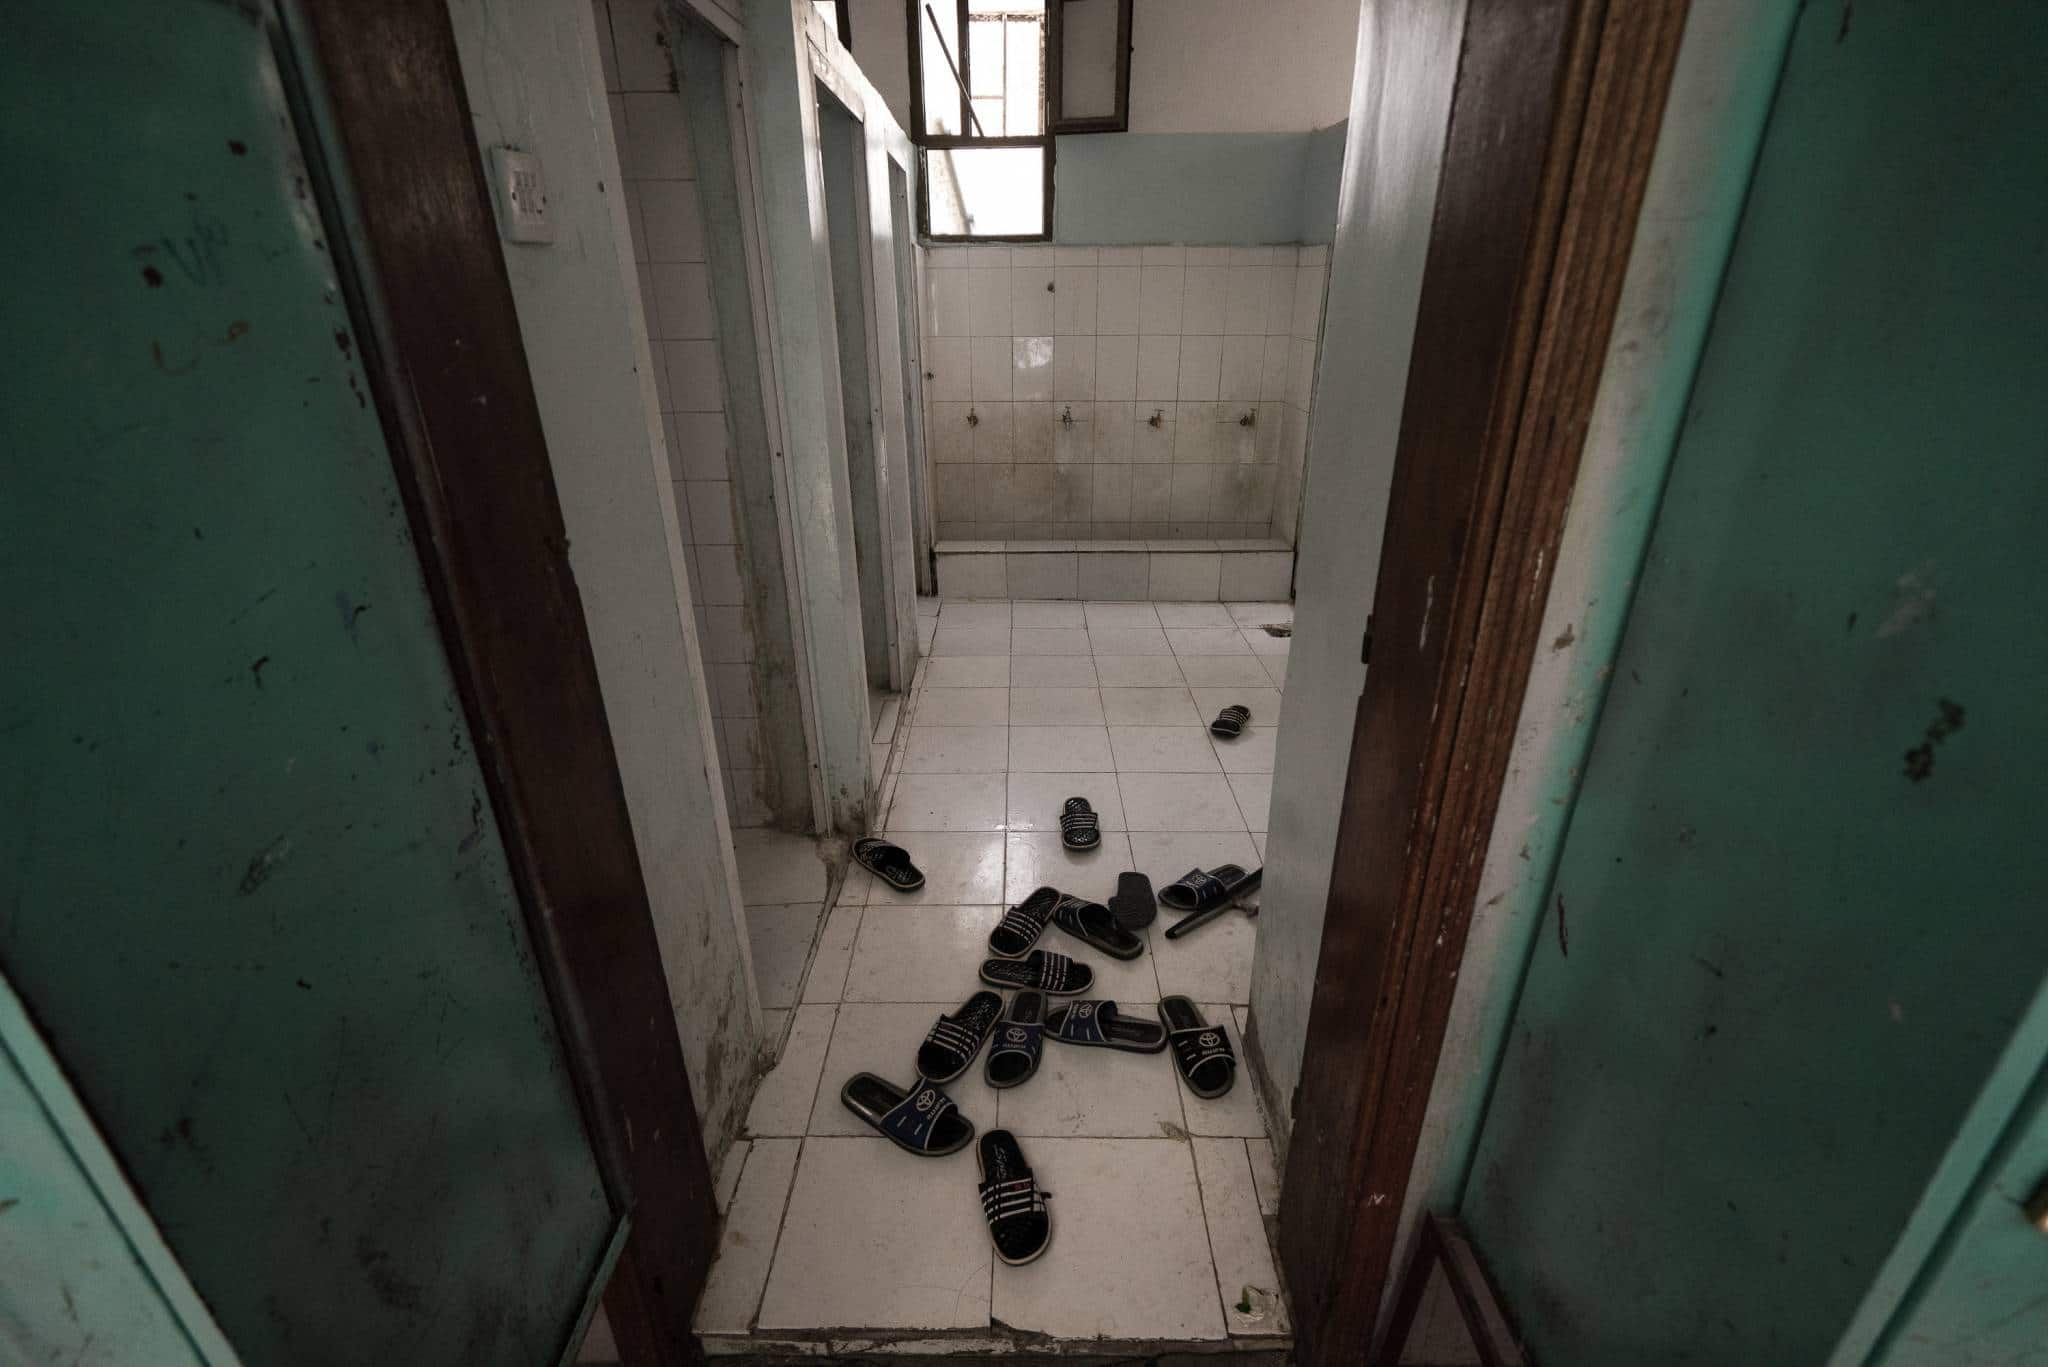 AL HUBAISHI ORPHANAGE, IBB CITY, YEMEN - 21 APRIL 2017.  The slippers of young orphans scattered on the floor of an orphanage in Ibb. The locally-run facility houses more than 200 boys, most of whose fathers were killed in action while serving in the army.   In many orphanages in Yemen, children have reportedly been targeted for recruitment by militants.